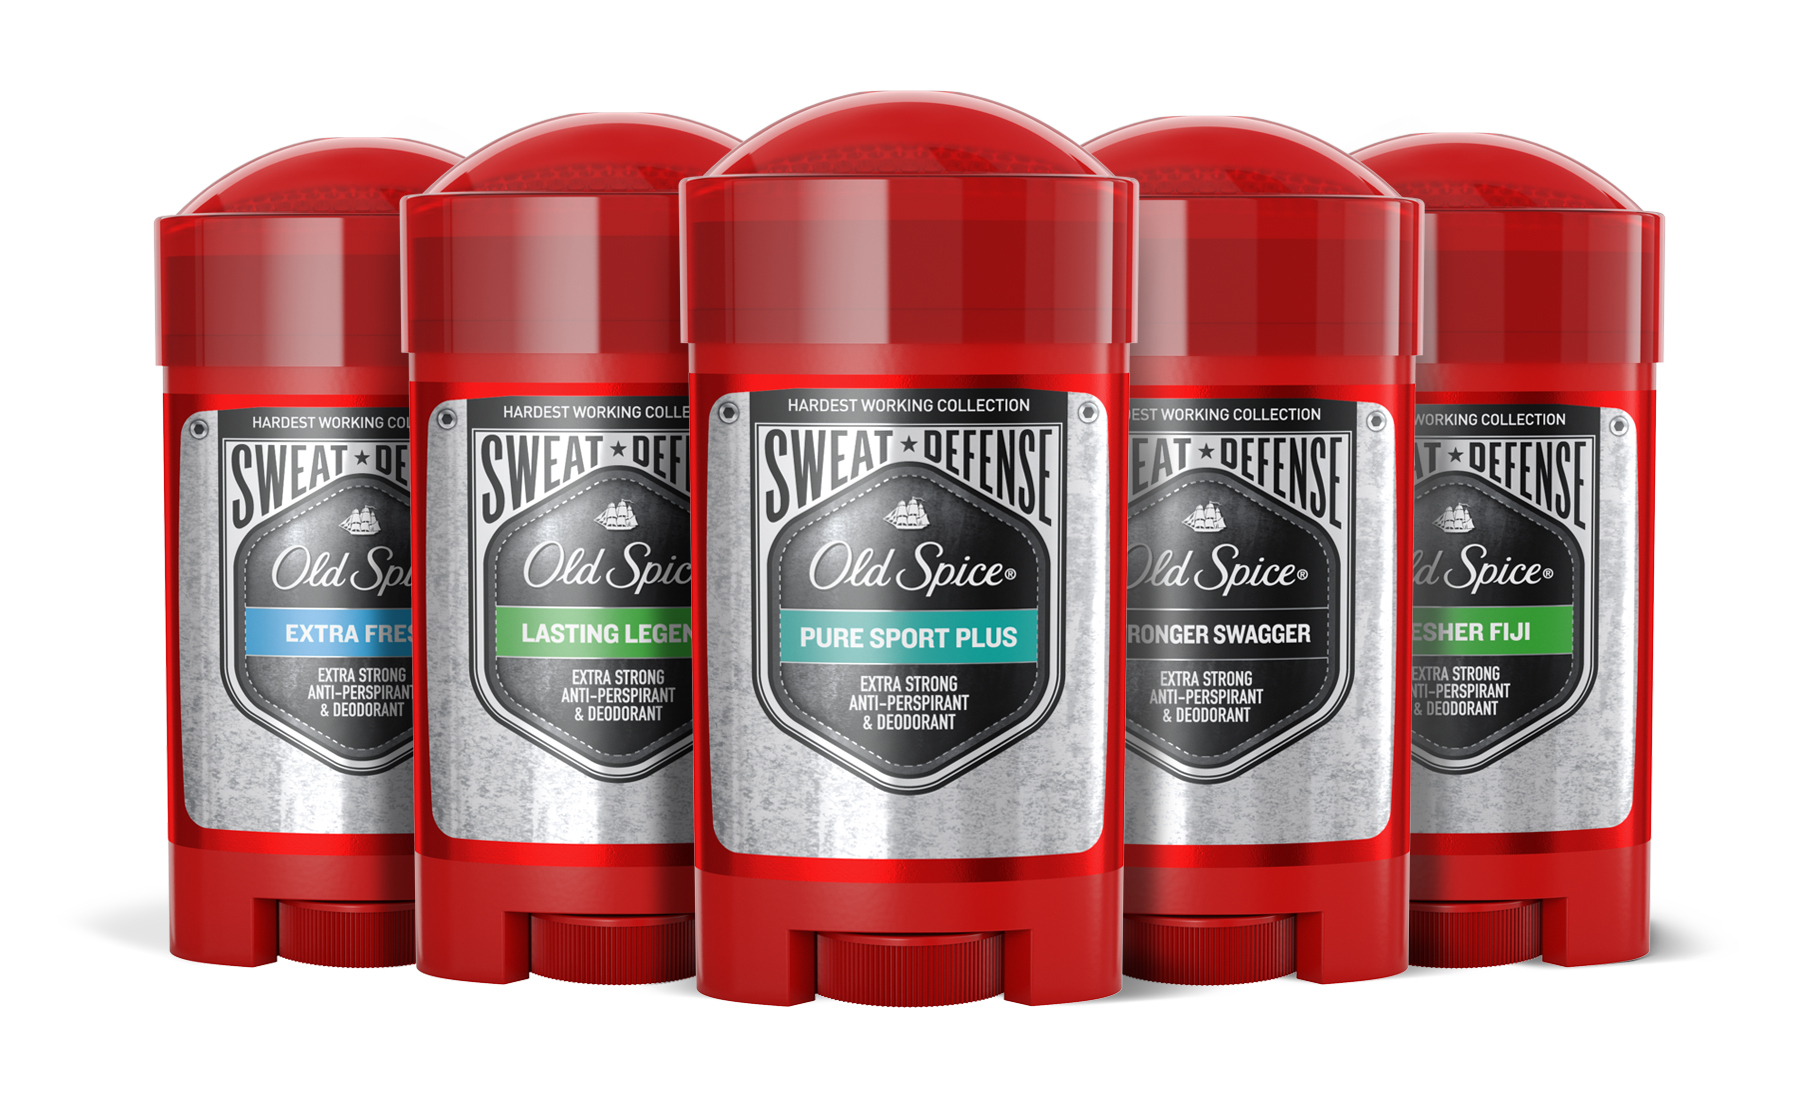 Old Spice Steps Ups Performance With New Hardest Working Collection